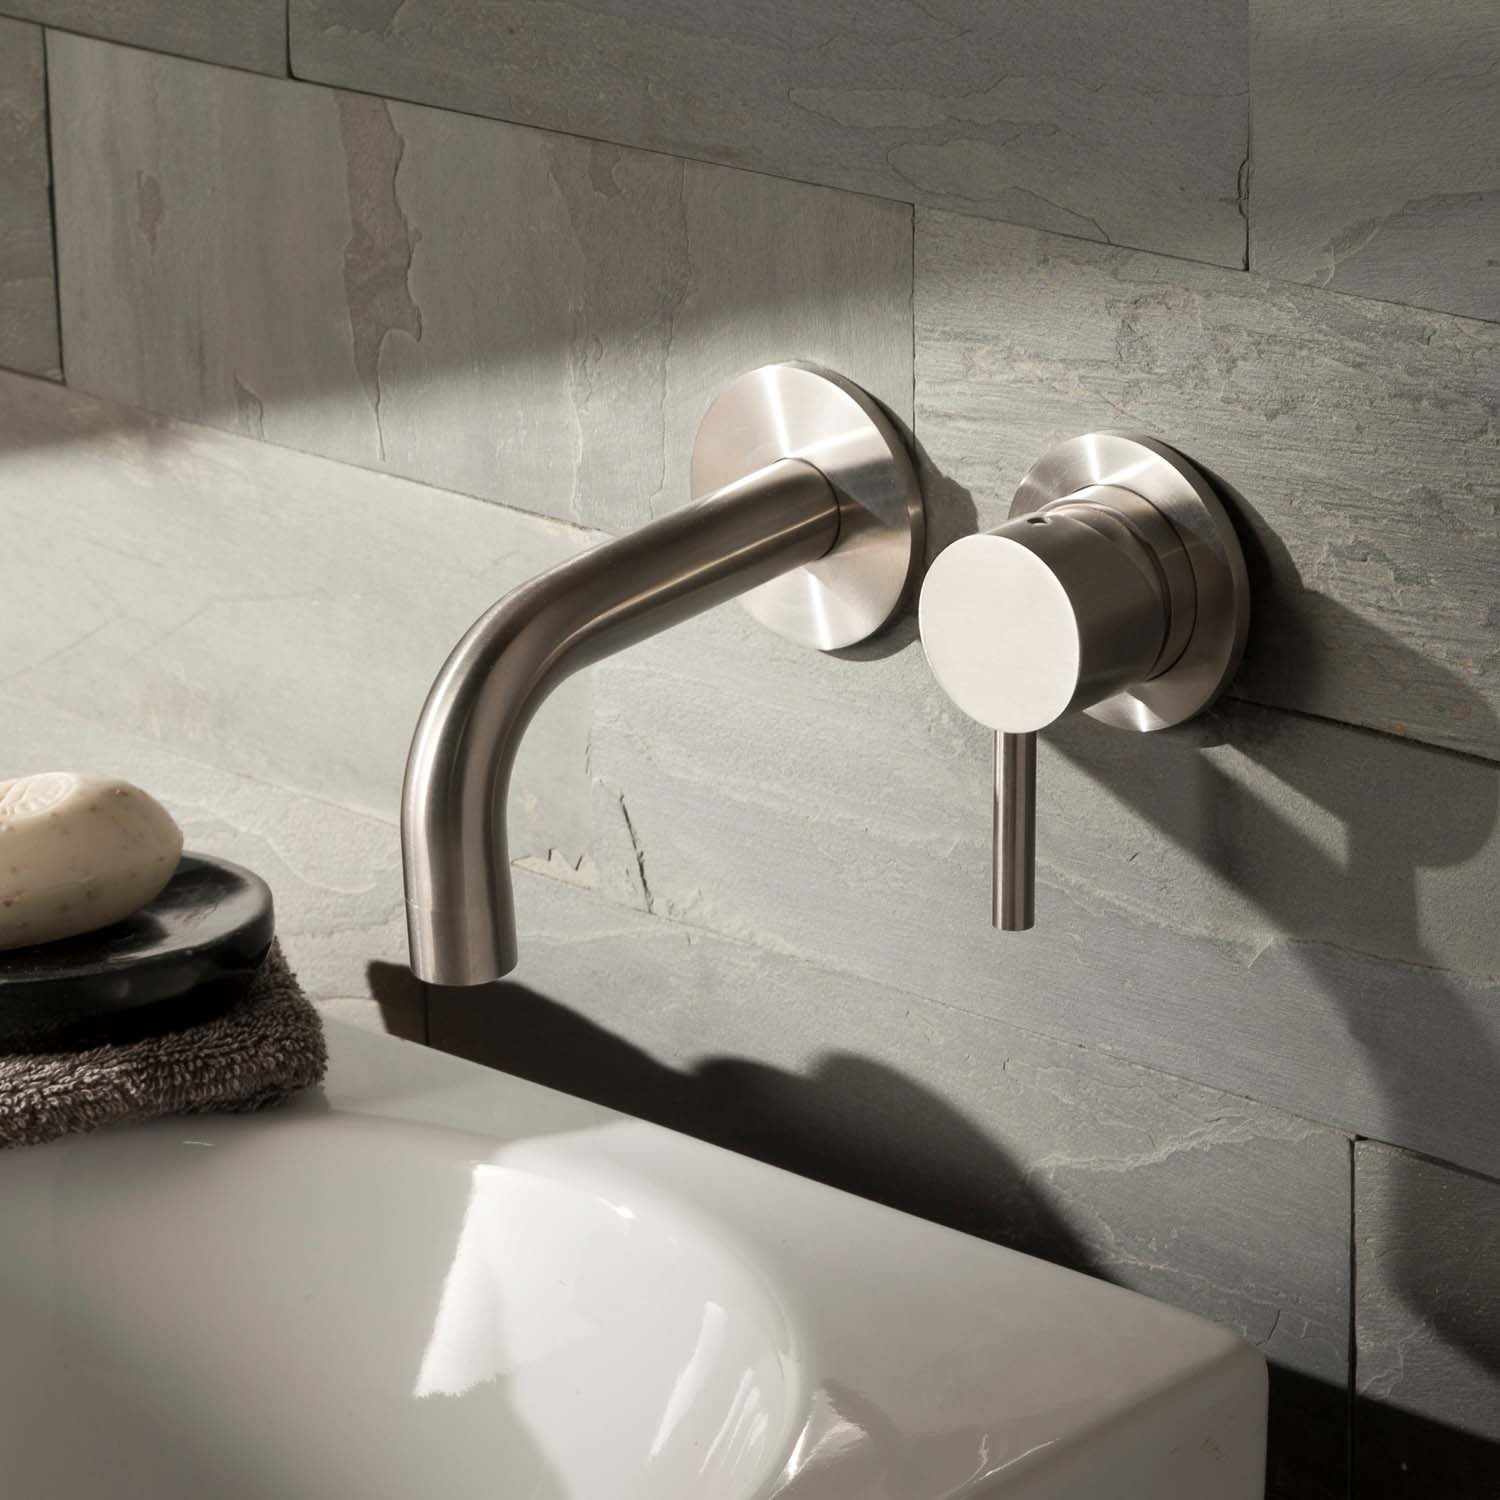 Two hole wall mounted Libero Wall Mounted Basin Tap with a 155mm spout and satin steel finish lifestyle image